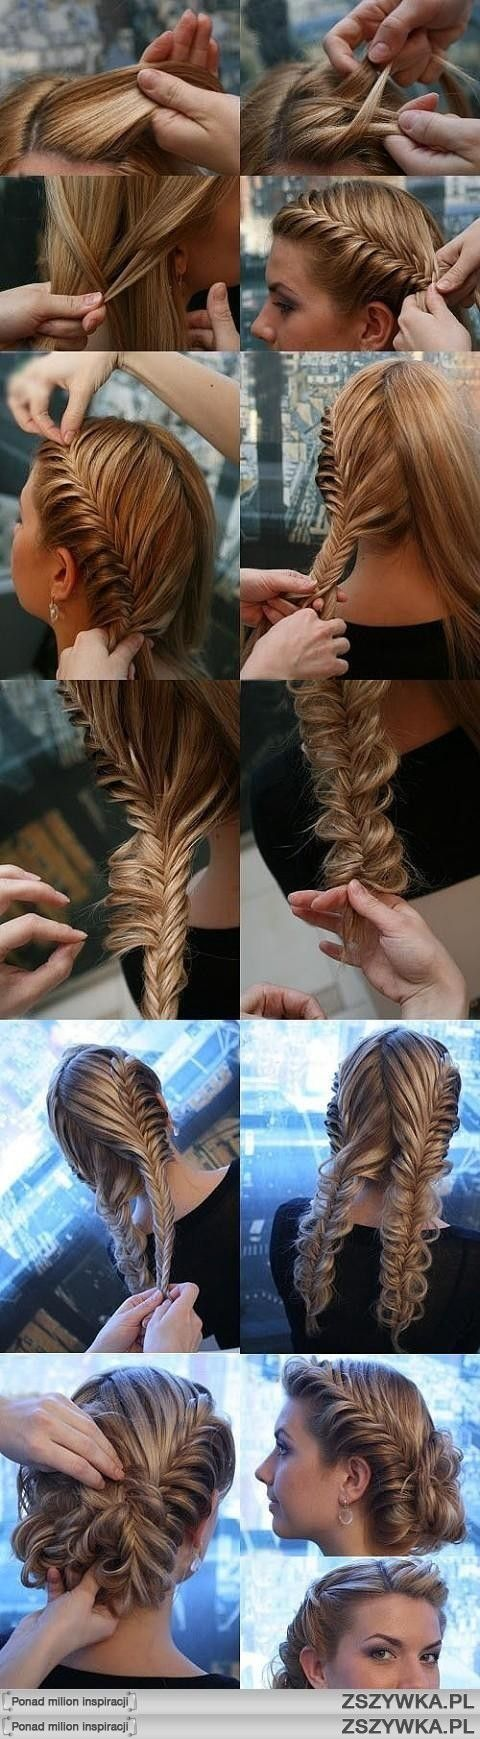 Fishtail updo <3.... need to find some one to try this on